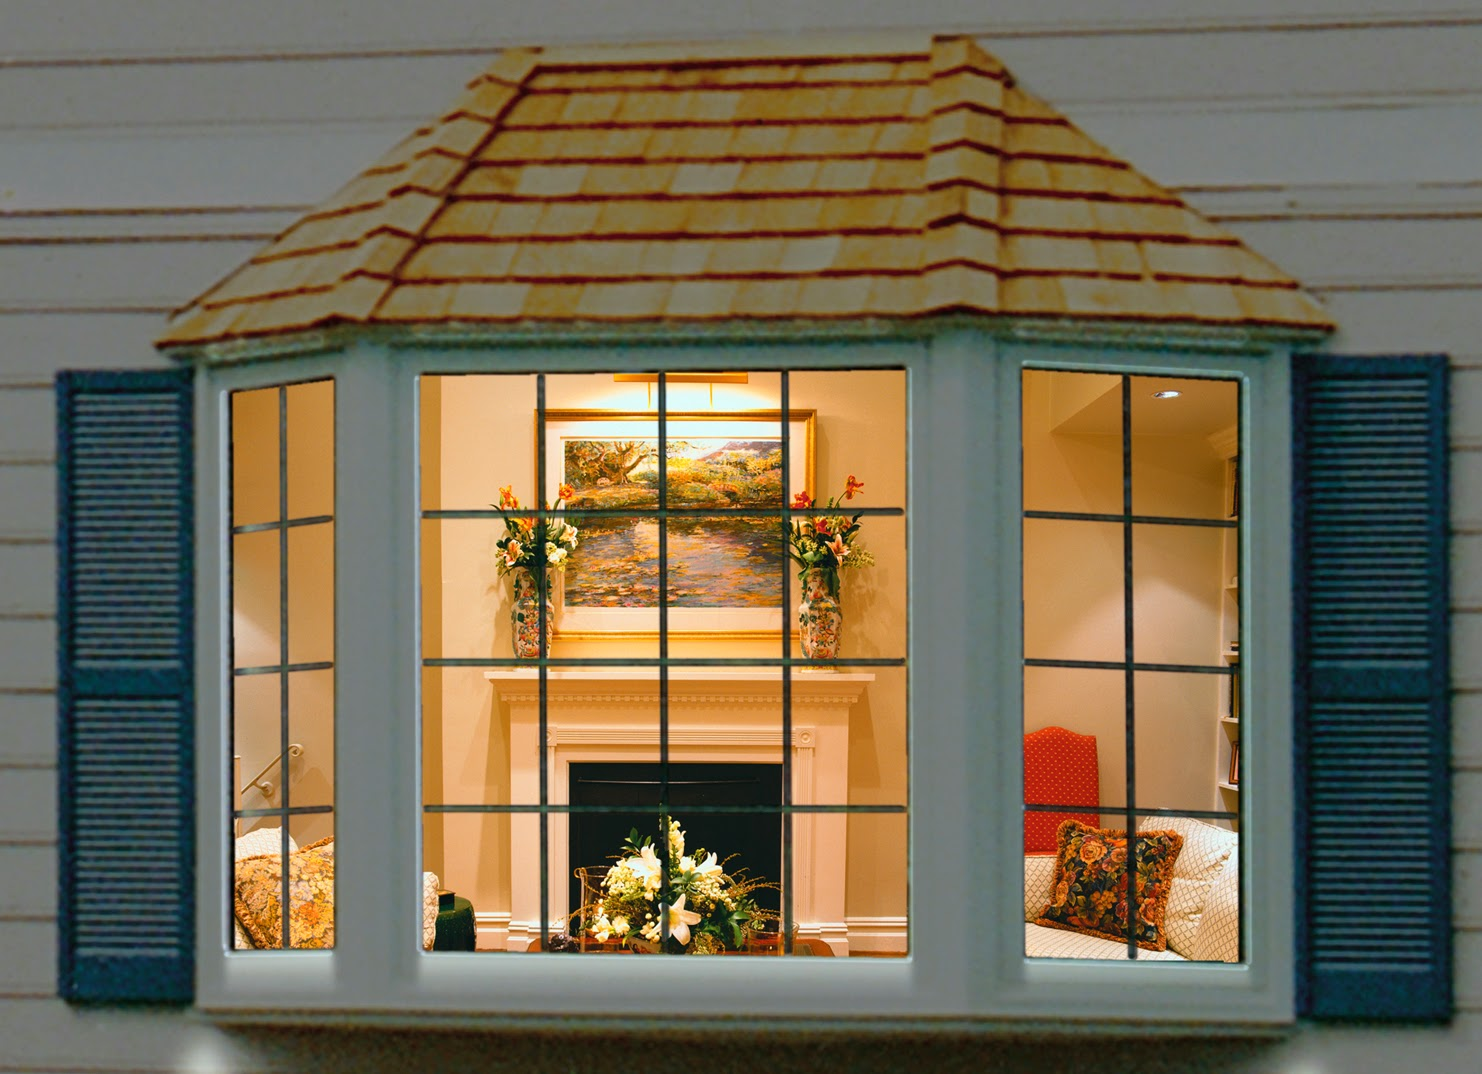 Most beautiful window house designs bahay ofw Home ideas for small houses